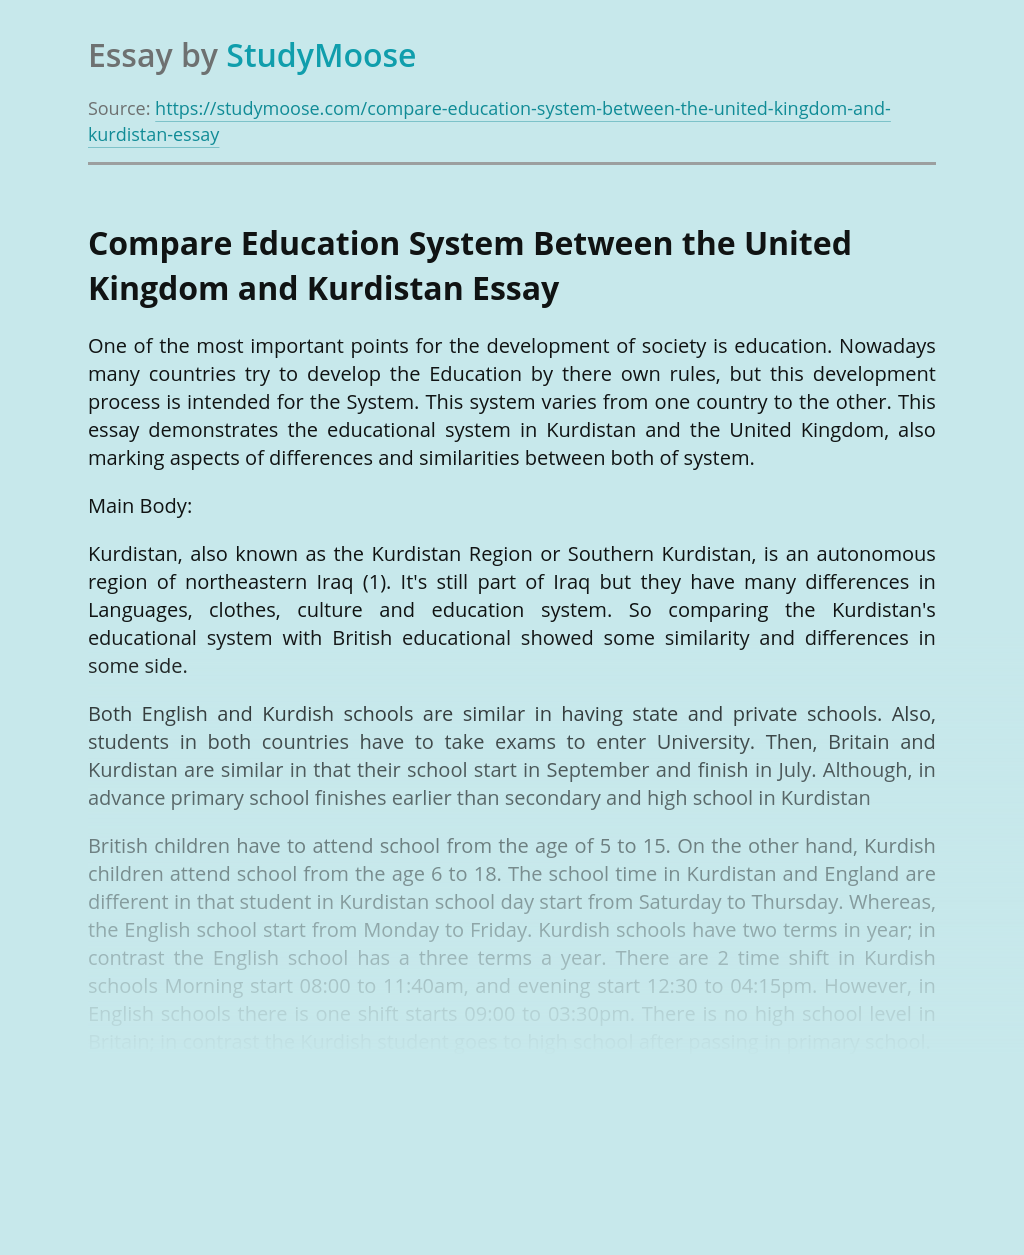 Compare Education System Between the United Kingdom and Kurdistan